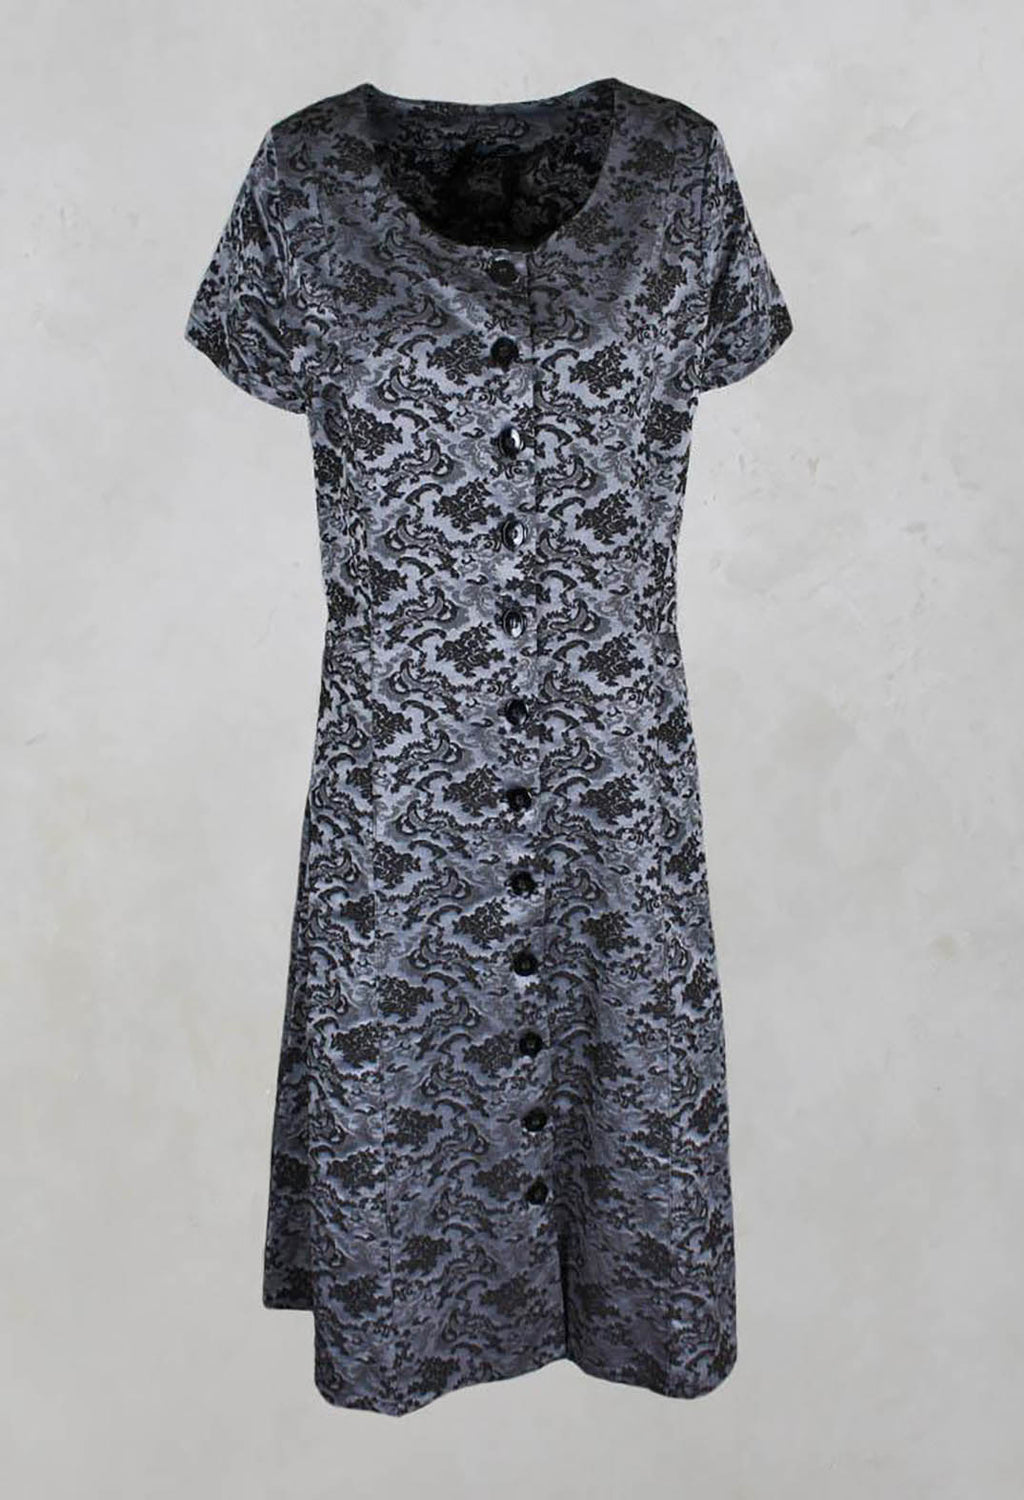 Button Floral Jacquard Dress in Black